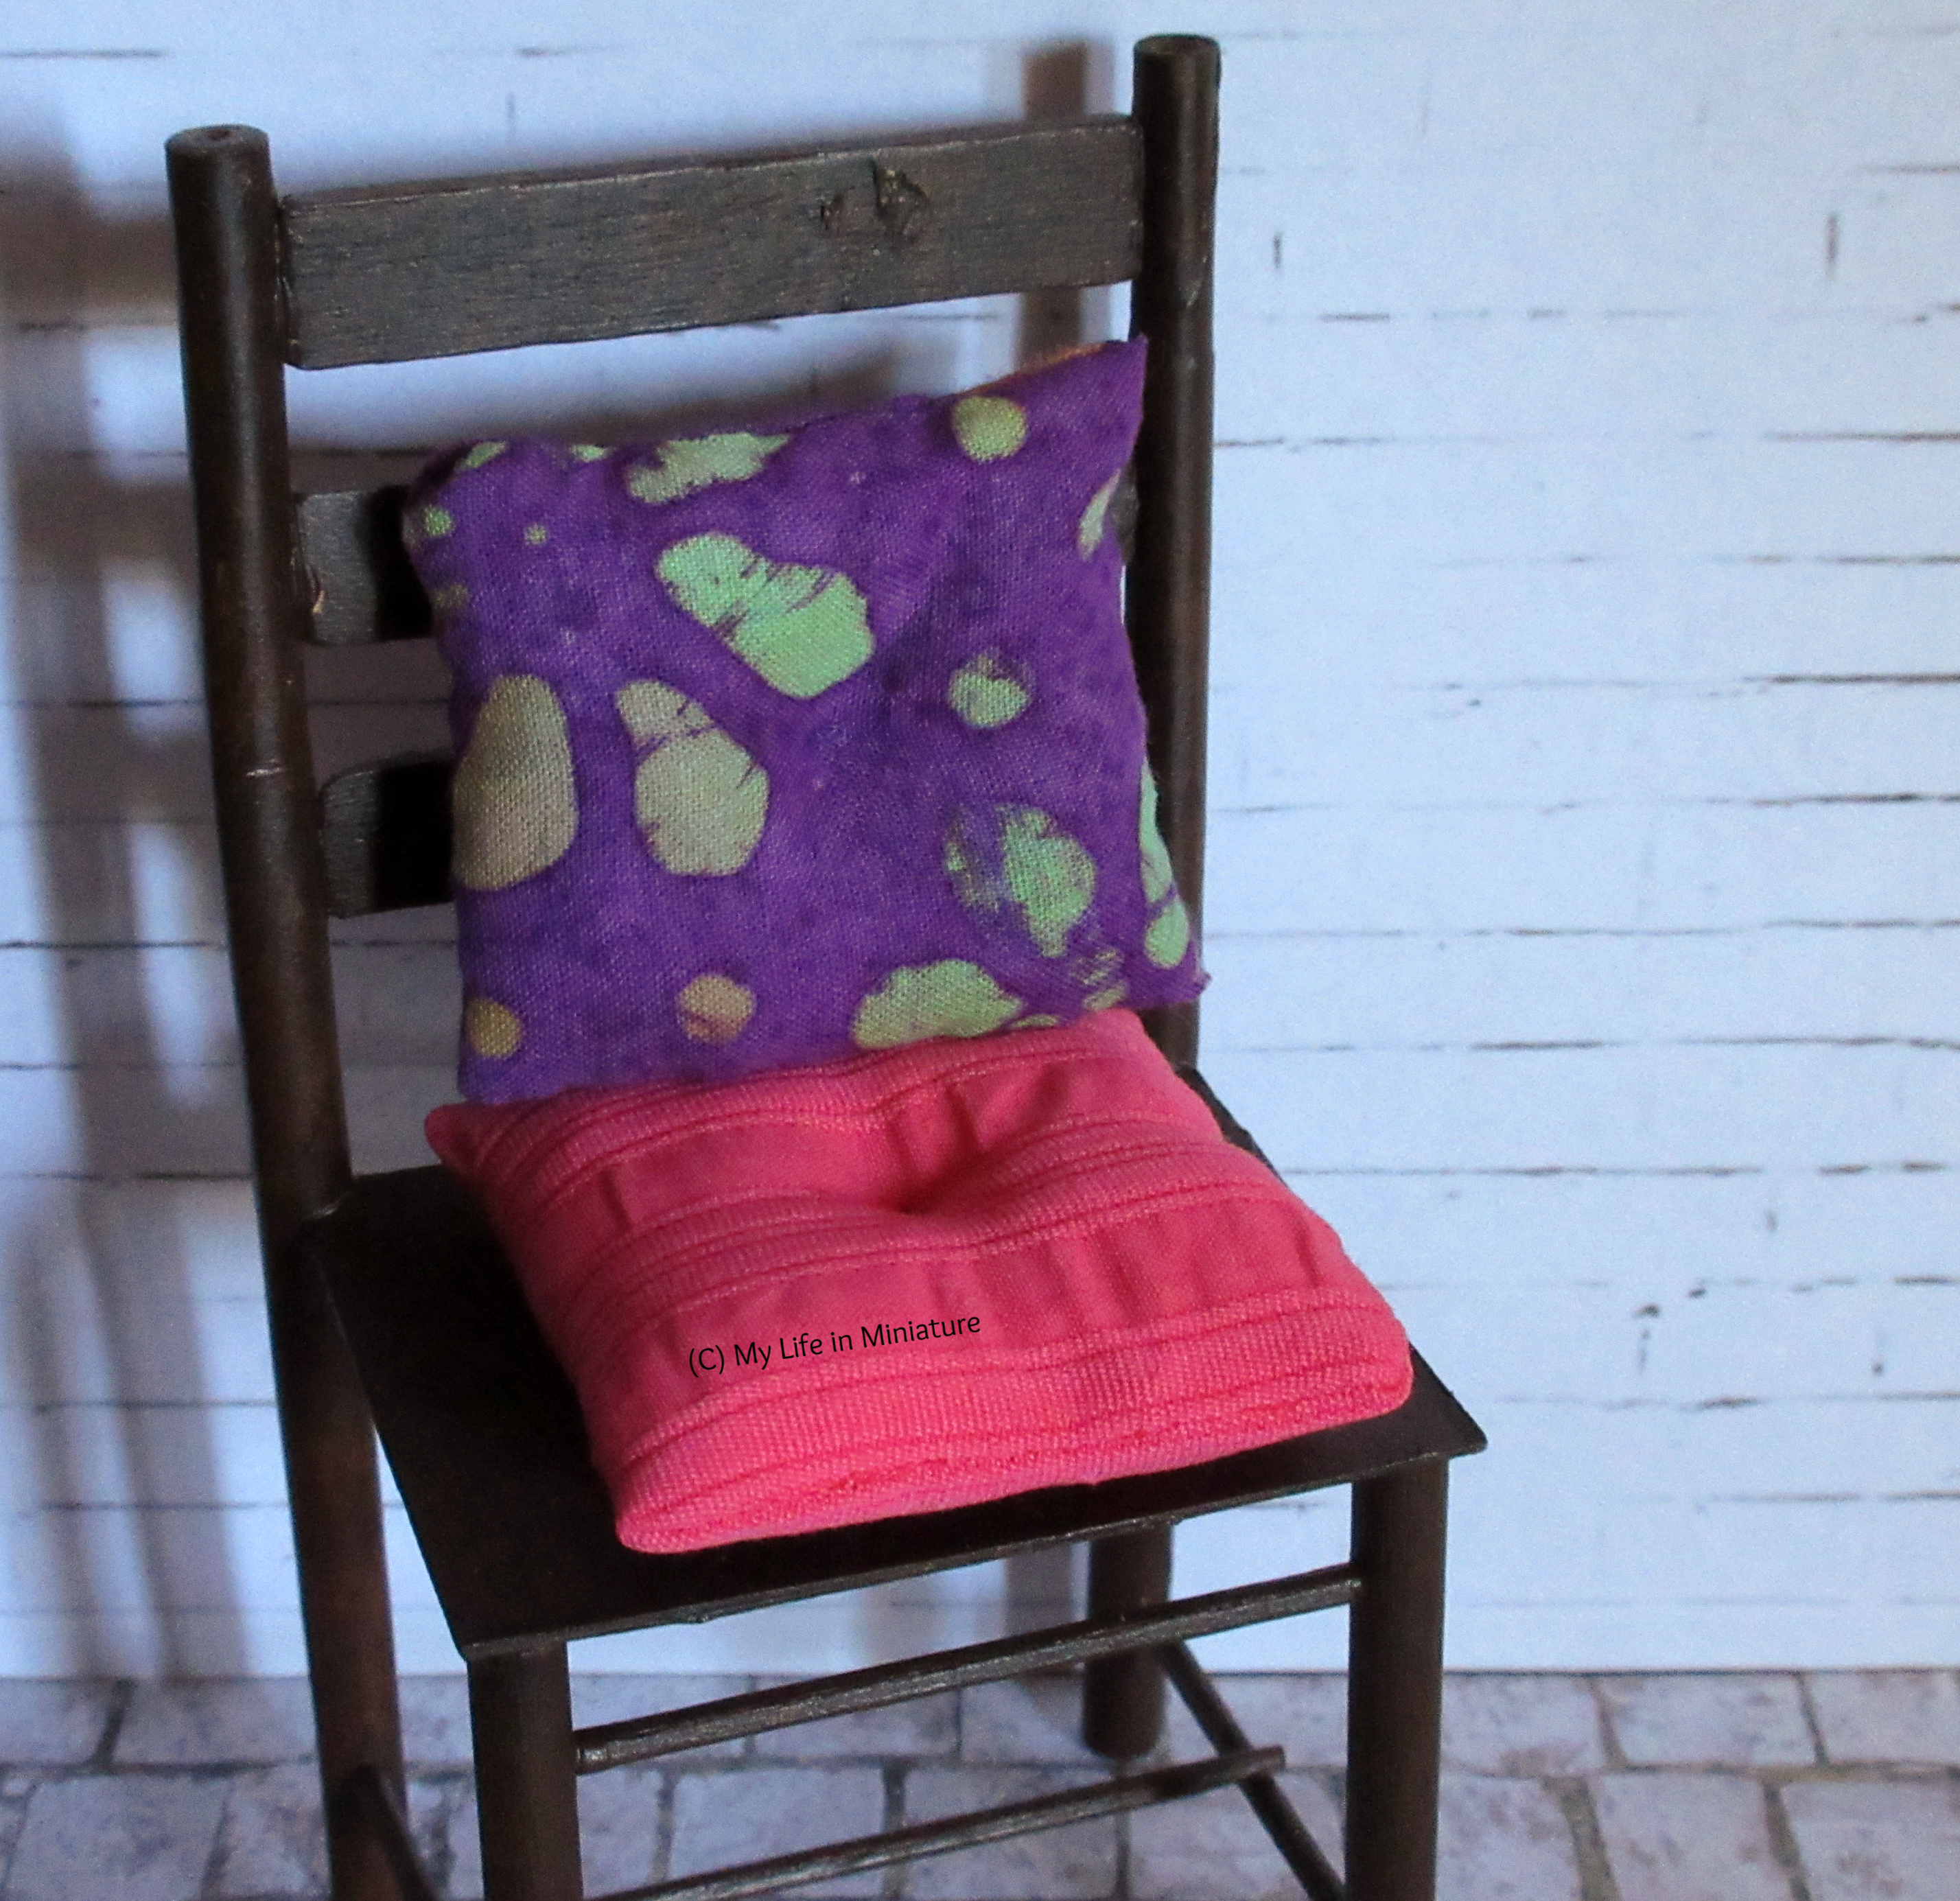 One of the brown chairs sits against a white brick background. On it are two cushions: one in purple batik fabric, one in pink fabric. Both have divots sewn in the centre.